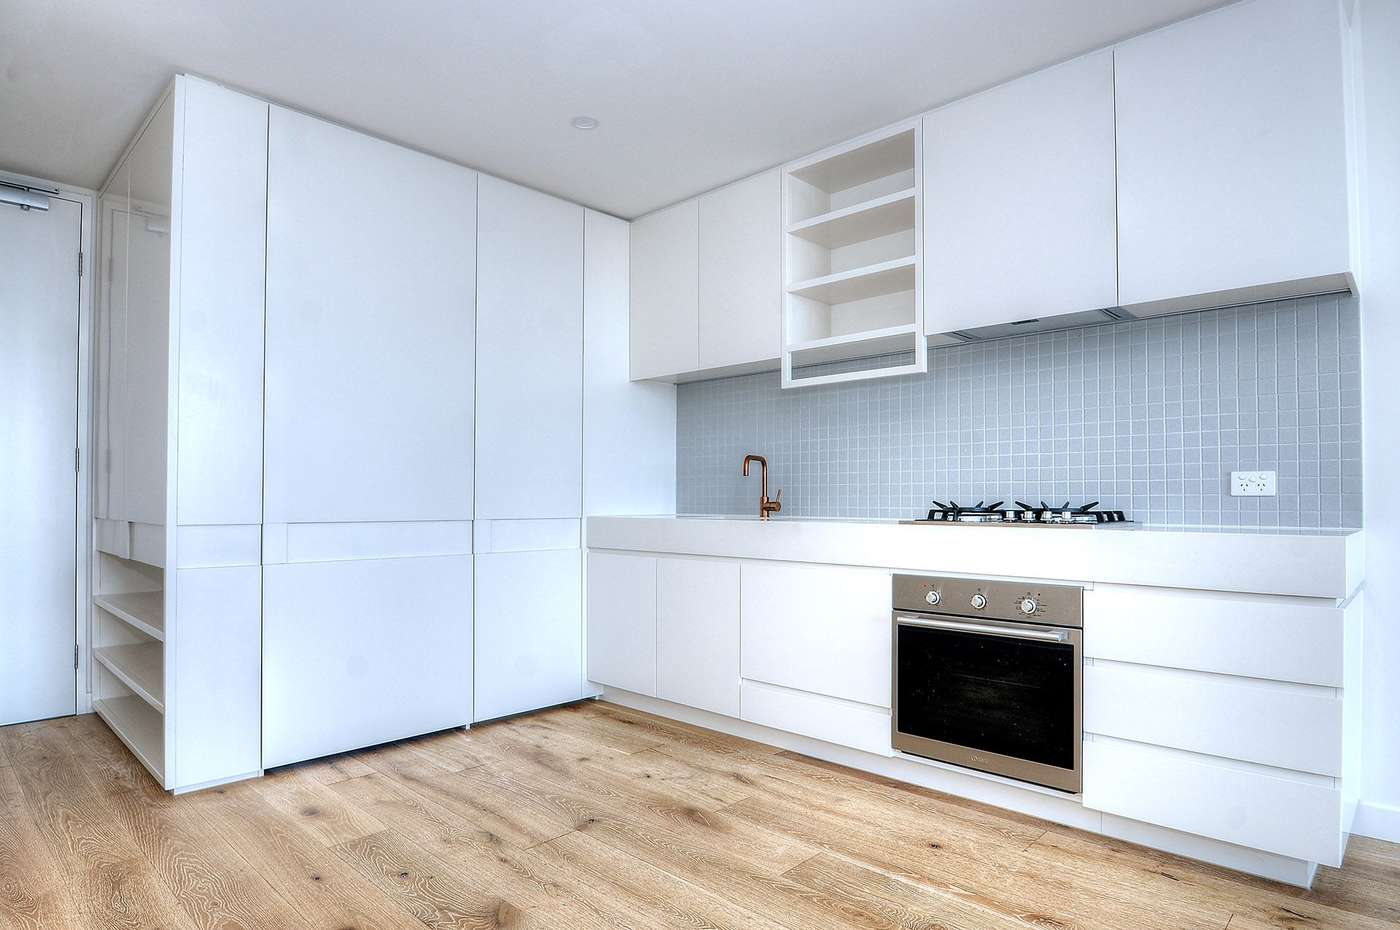 Main view of Homely apartment listing, 1419/52-54 O'Sullivan Road, Glen Waverley, VIC 3150